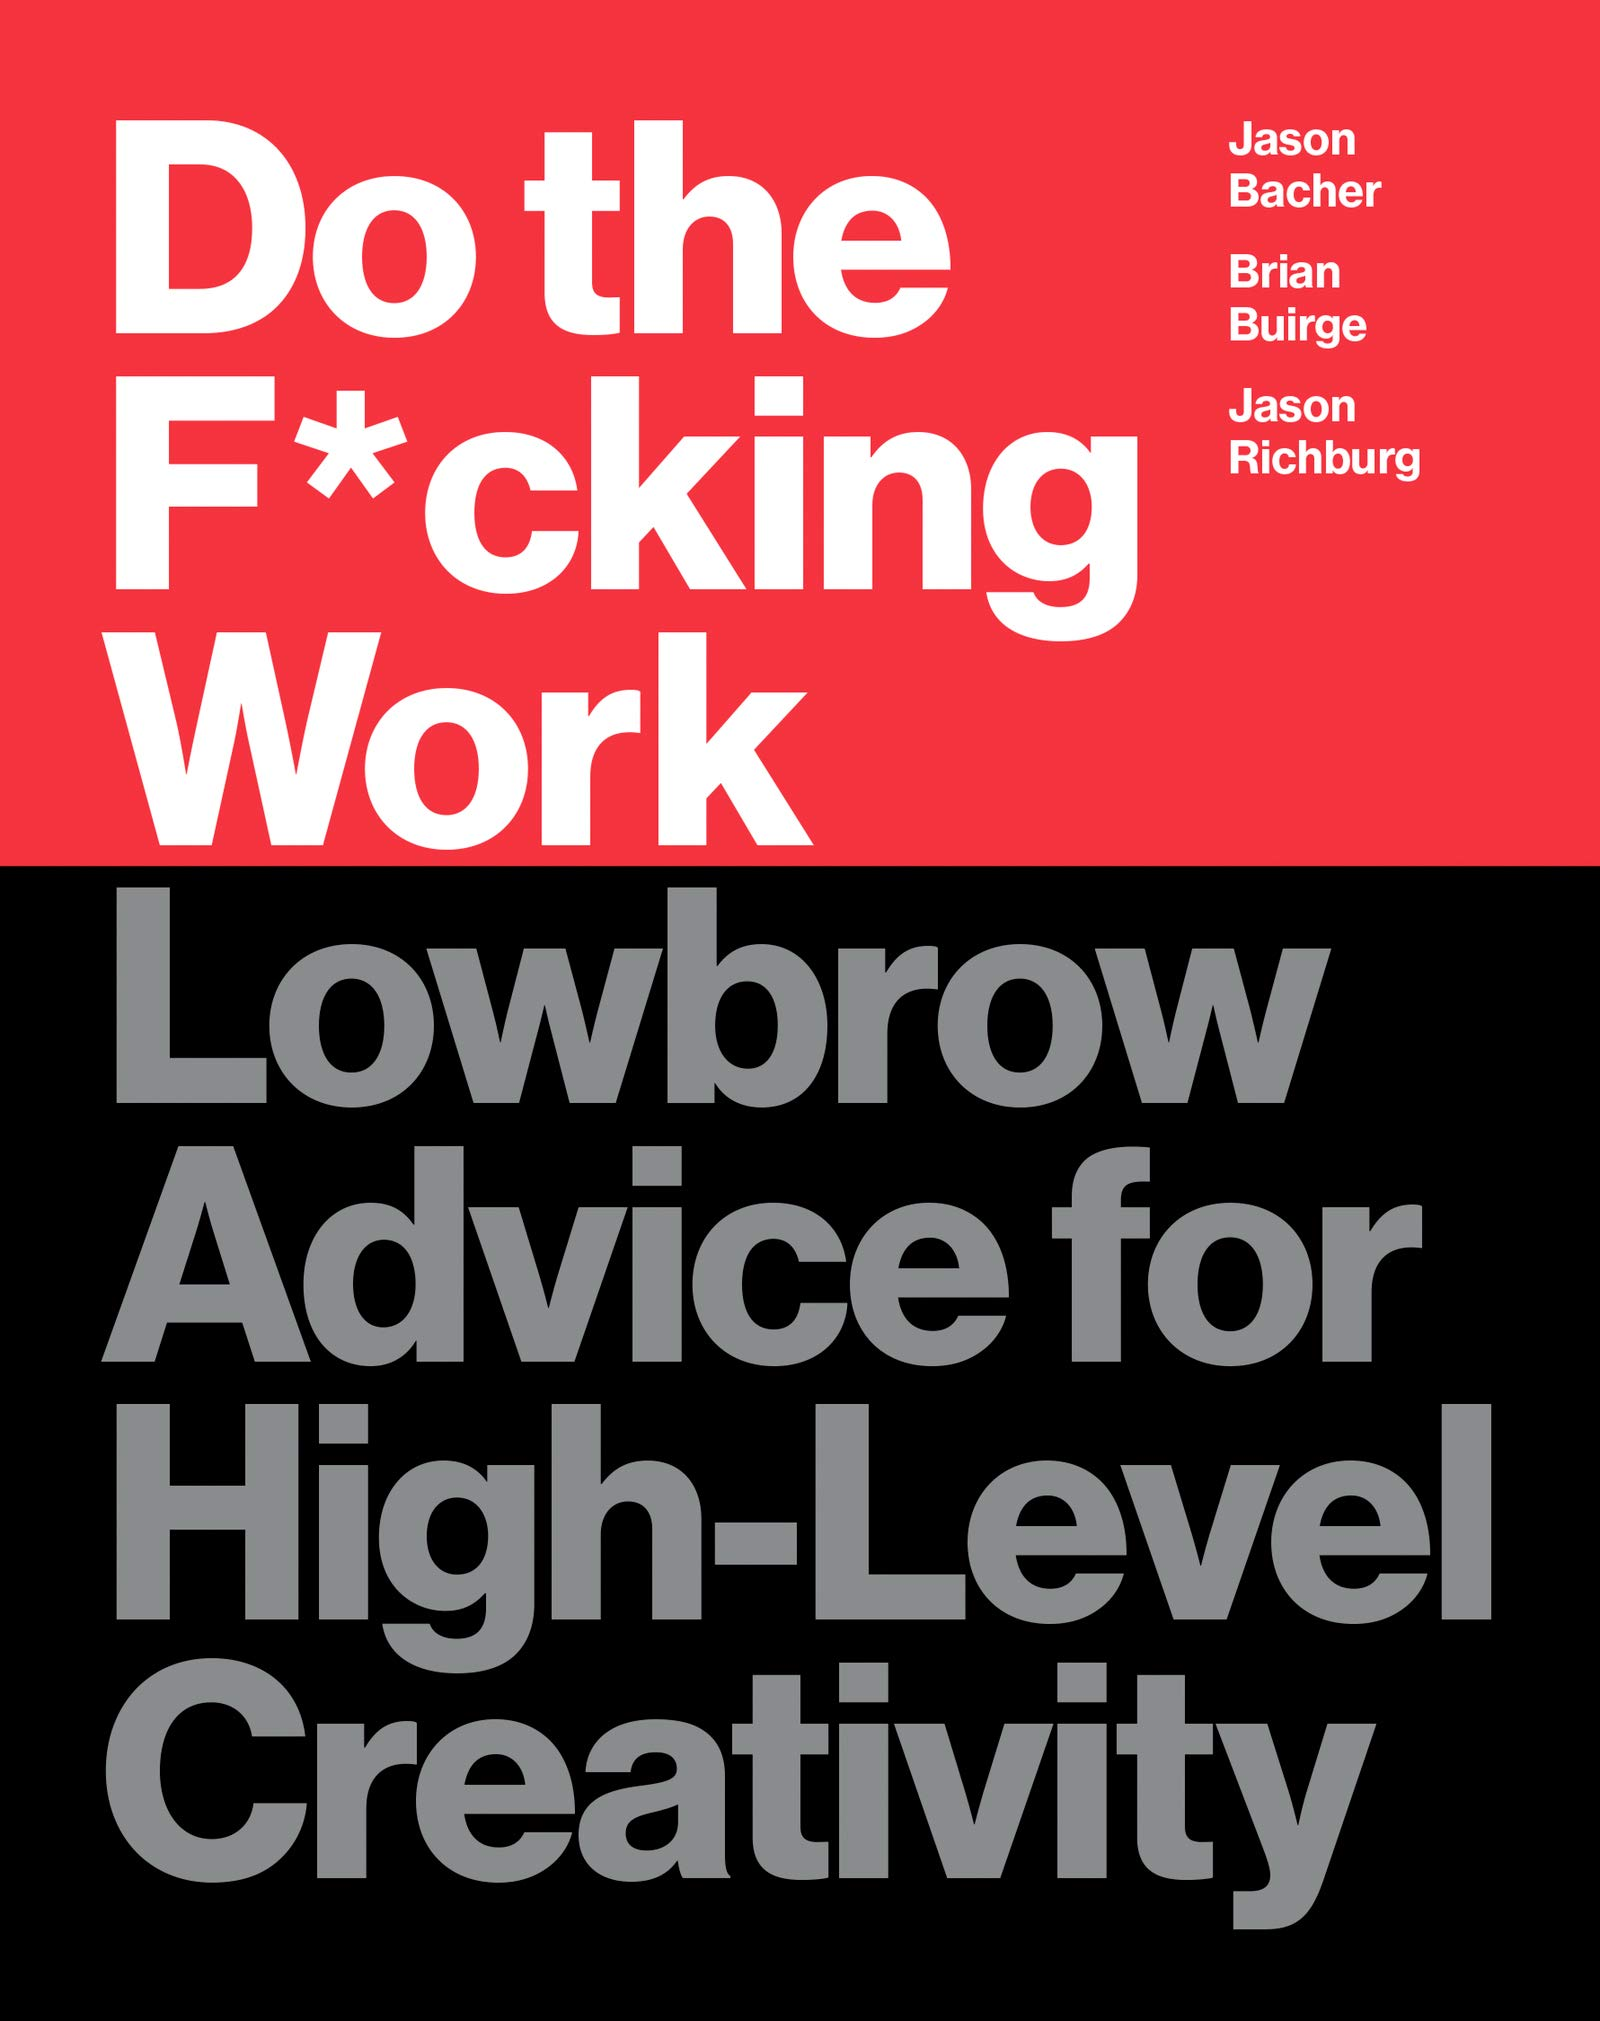 Do the F*cking Work: Lowbrow Advice for High-Level Creativity by Harper Design